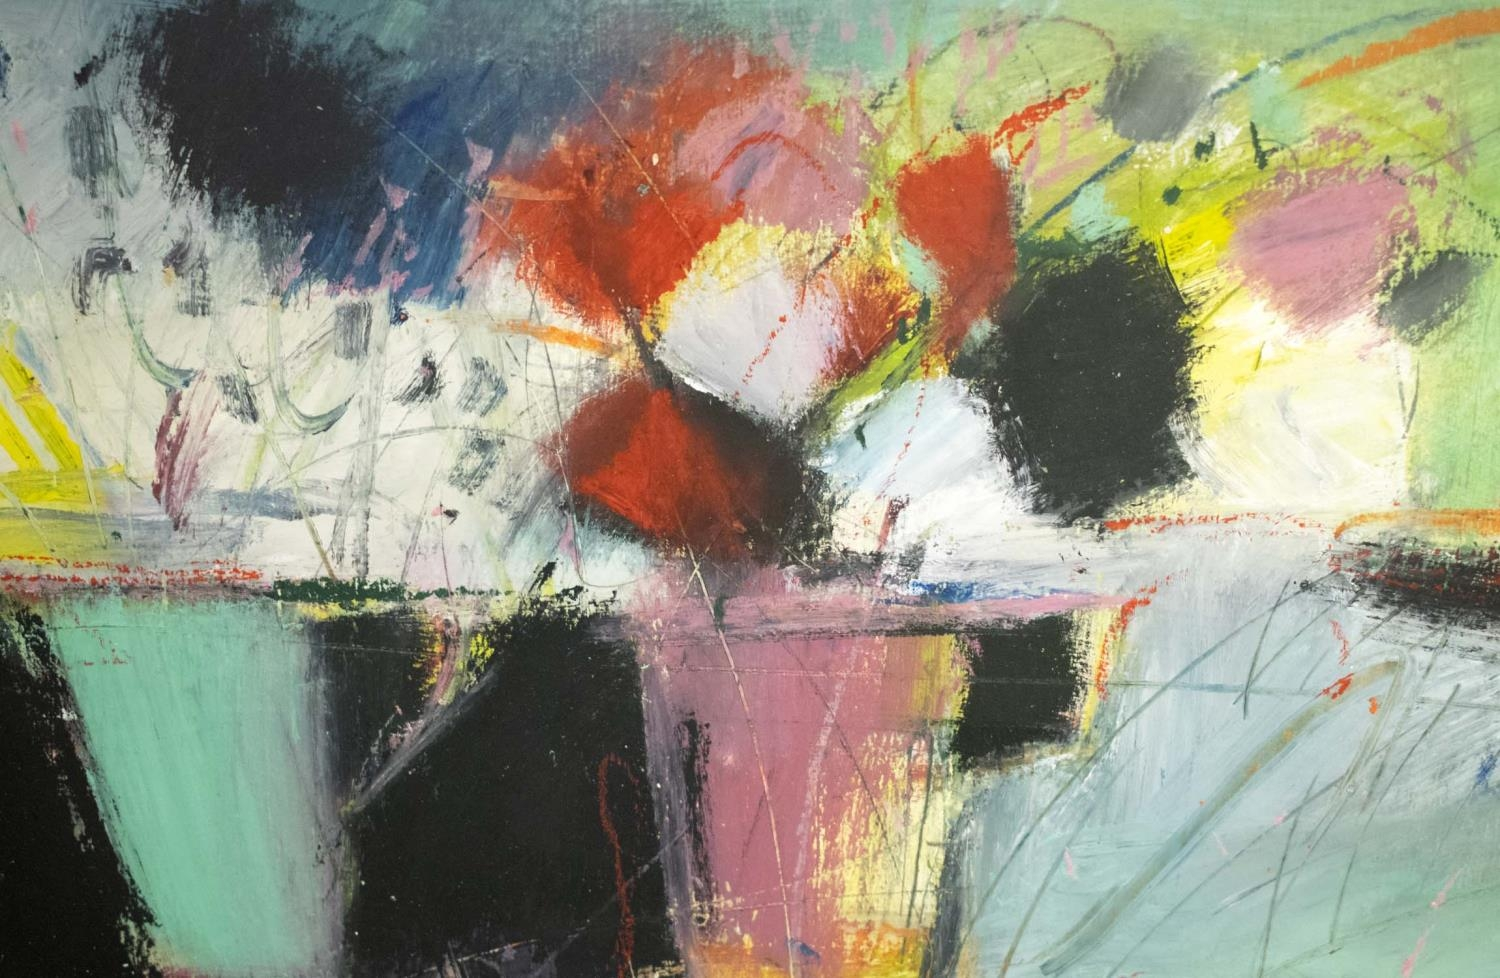 JUSTINE LOIS THORPE (Contemporary British) 'Still Life with Cups of Flowers', 2014, pastel, - Image 3 of 8